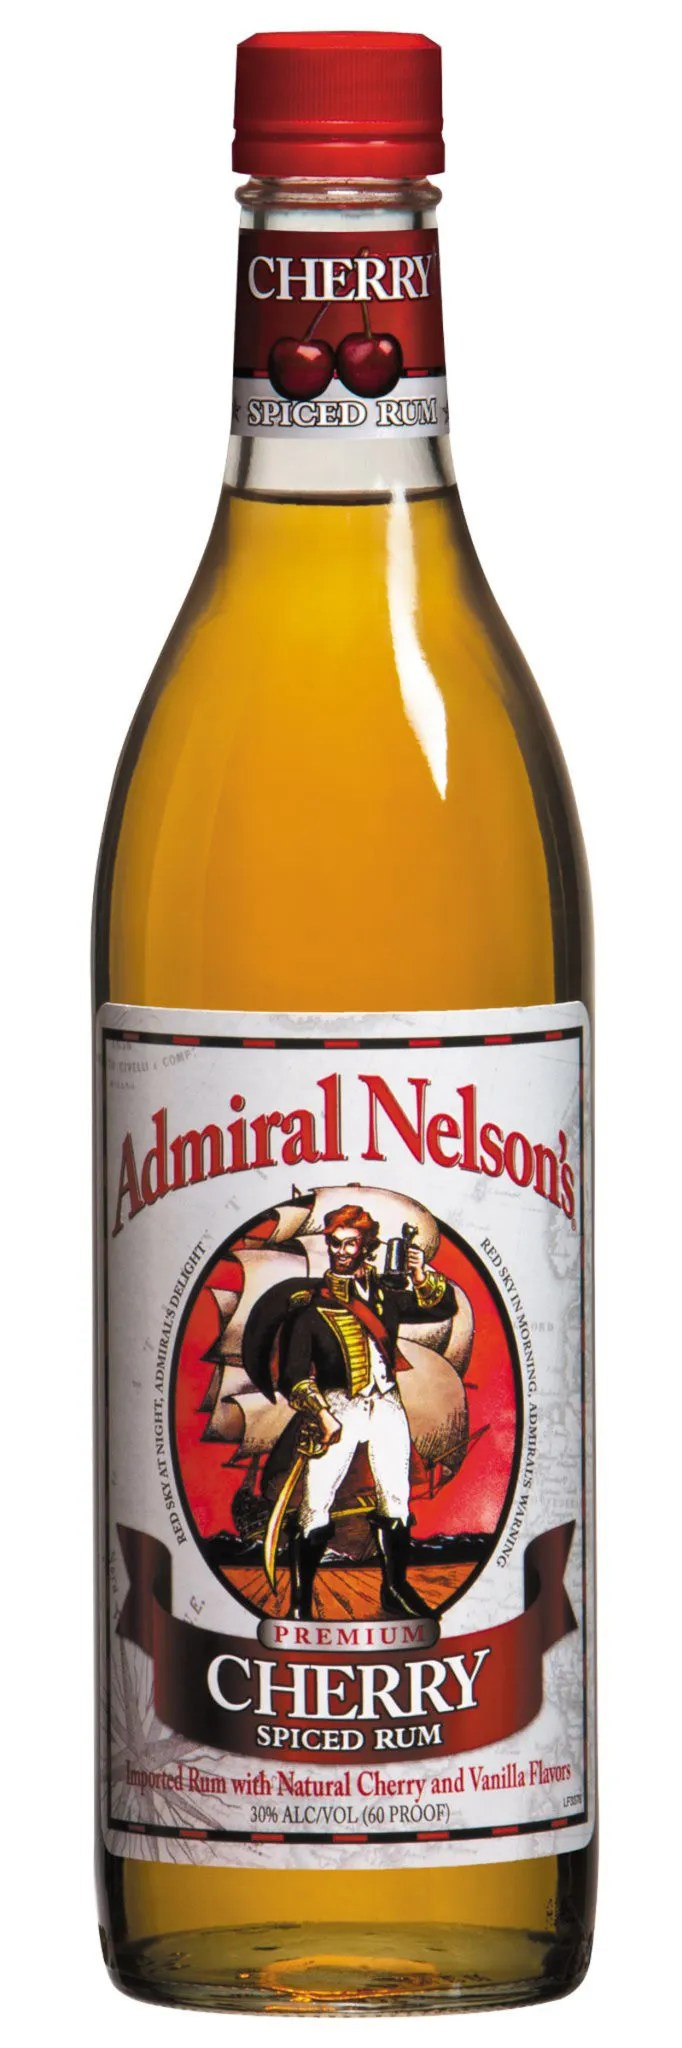 Aromas Of Cherry And Creamy Vanilla Like A Chocolate Liquor Bon The Palate Leads With Syrupy Sweet Flavor Over Base